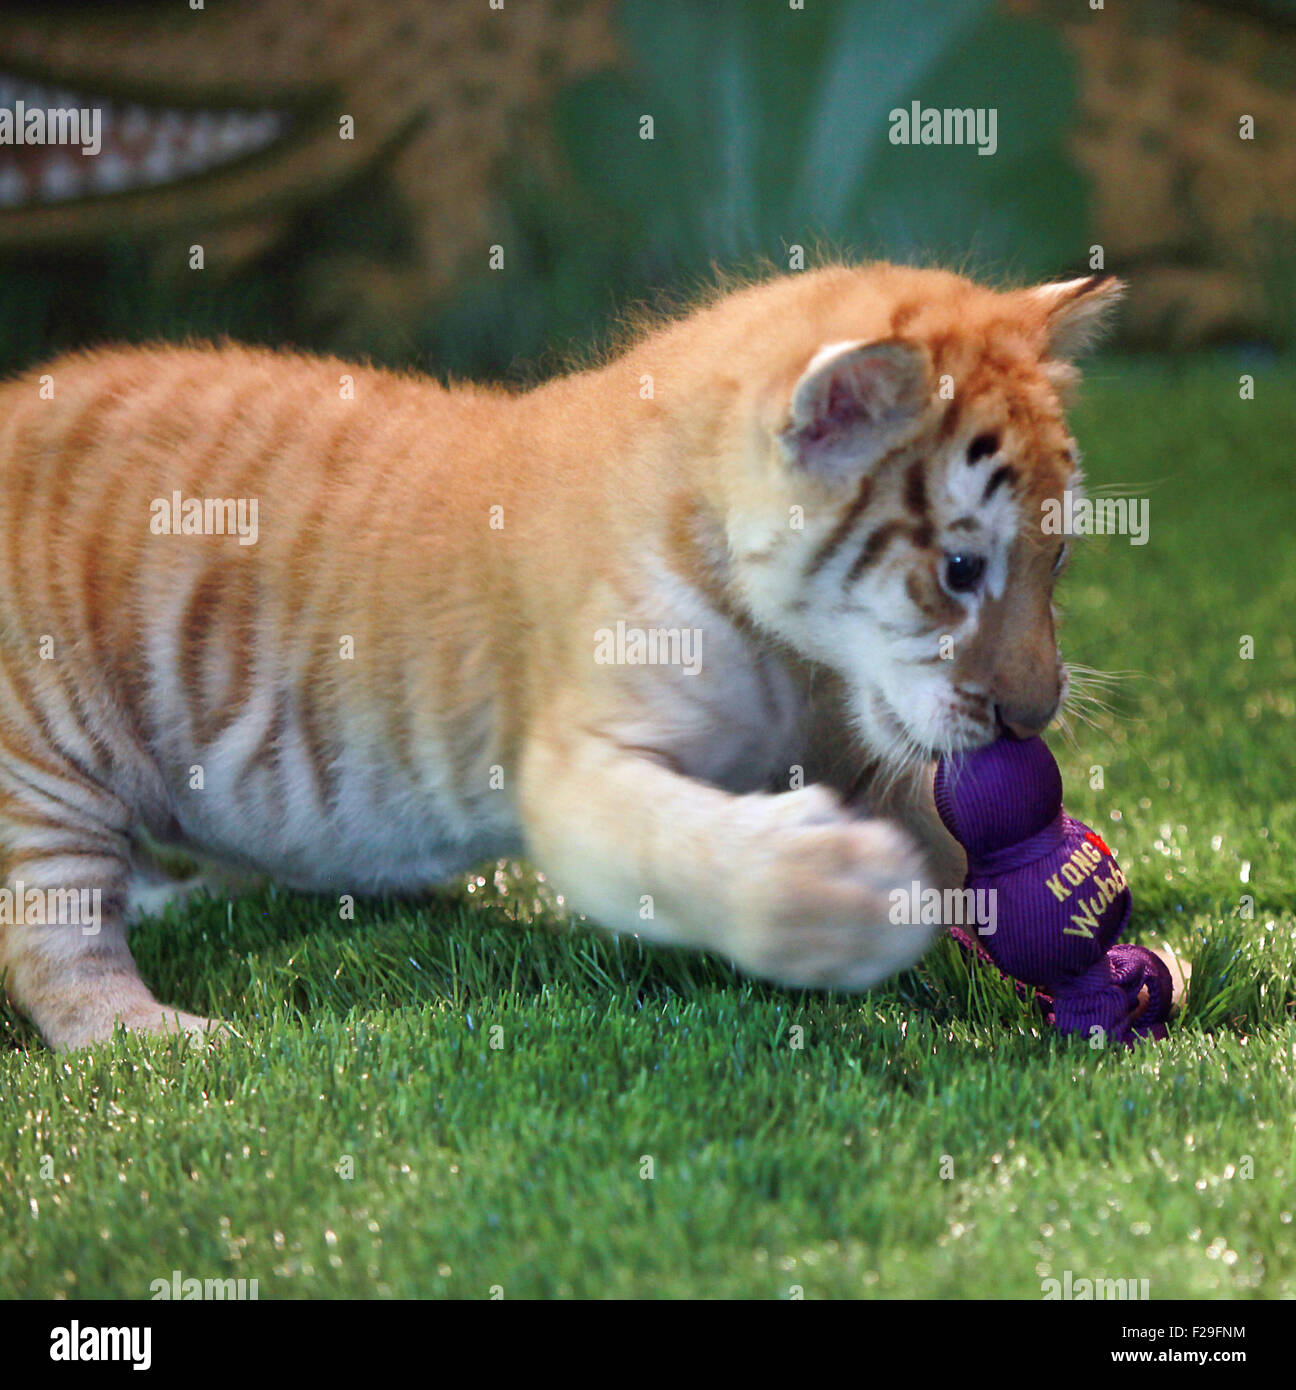 Creuda was given a live tiger cub for his birthday 29.06.2017 59